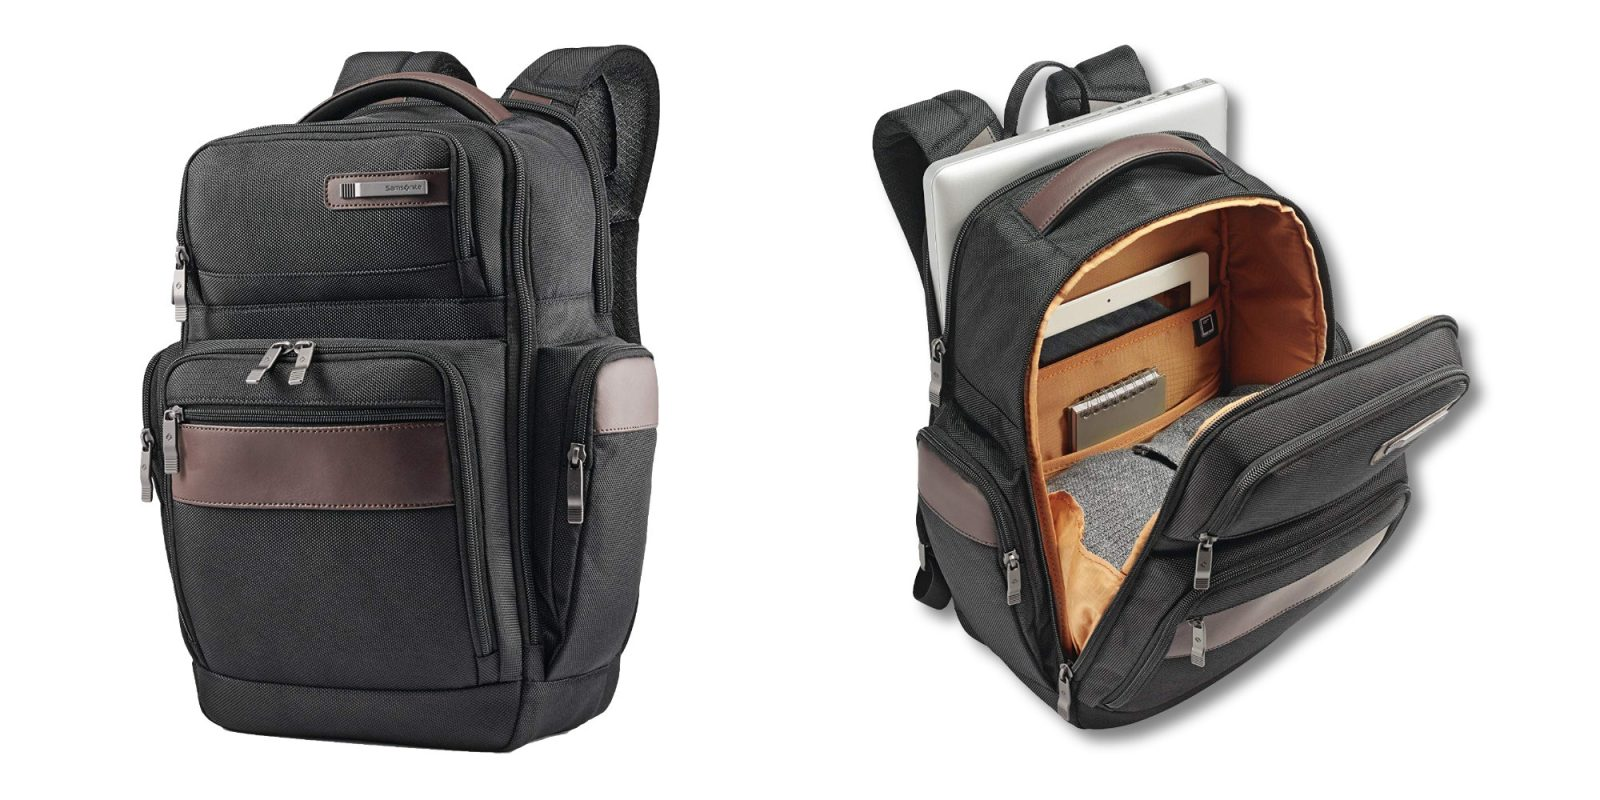 Slash 50% off Samsonite's MacBook + iPad Pro-stowing Kombi Backpack at $42